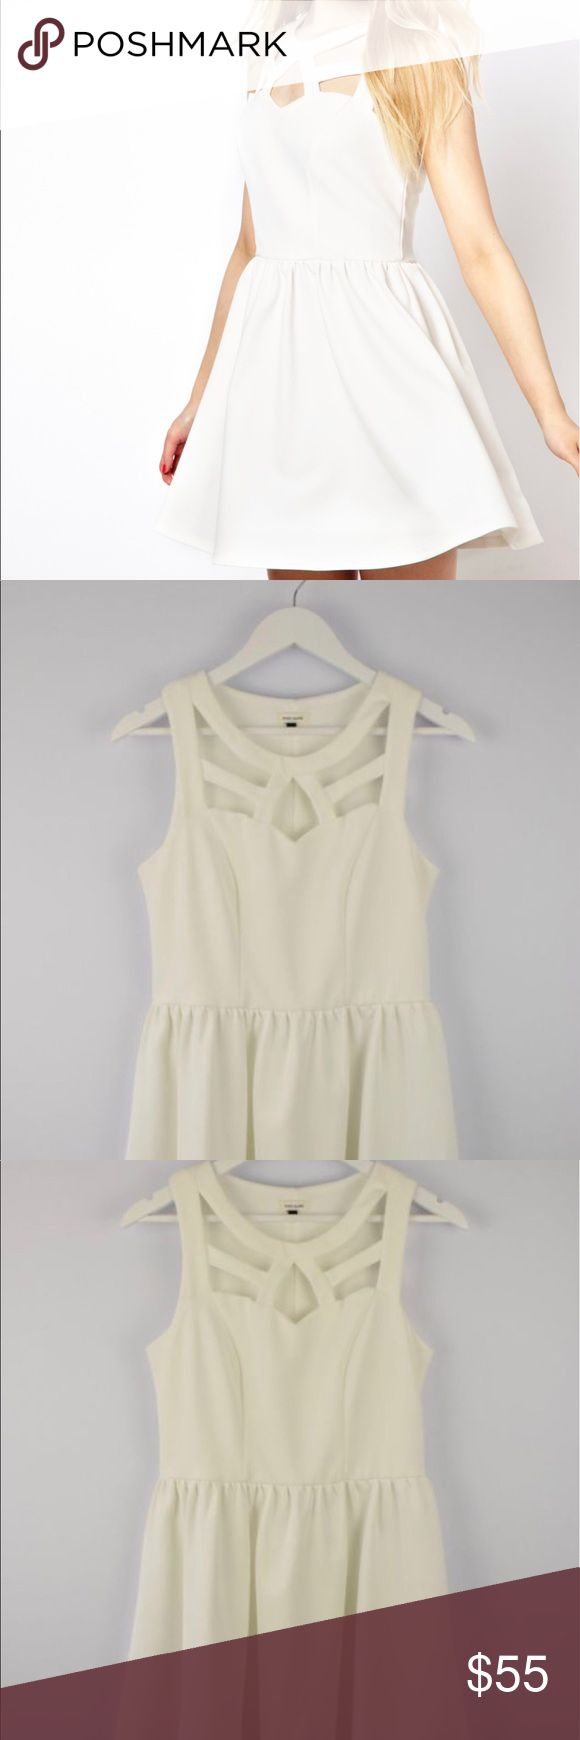 River Island Cut Out Detail Skater Dress Ready for summer Cut out skater dress in Crisp white. Photos courtesy of @asos River Island Dresses Mini